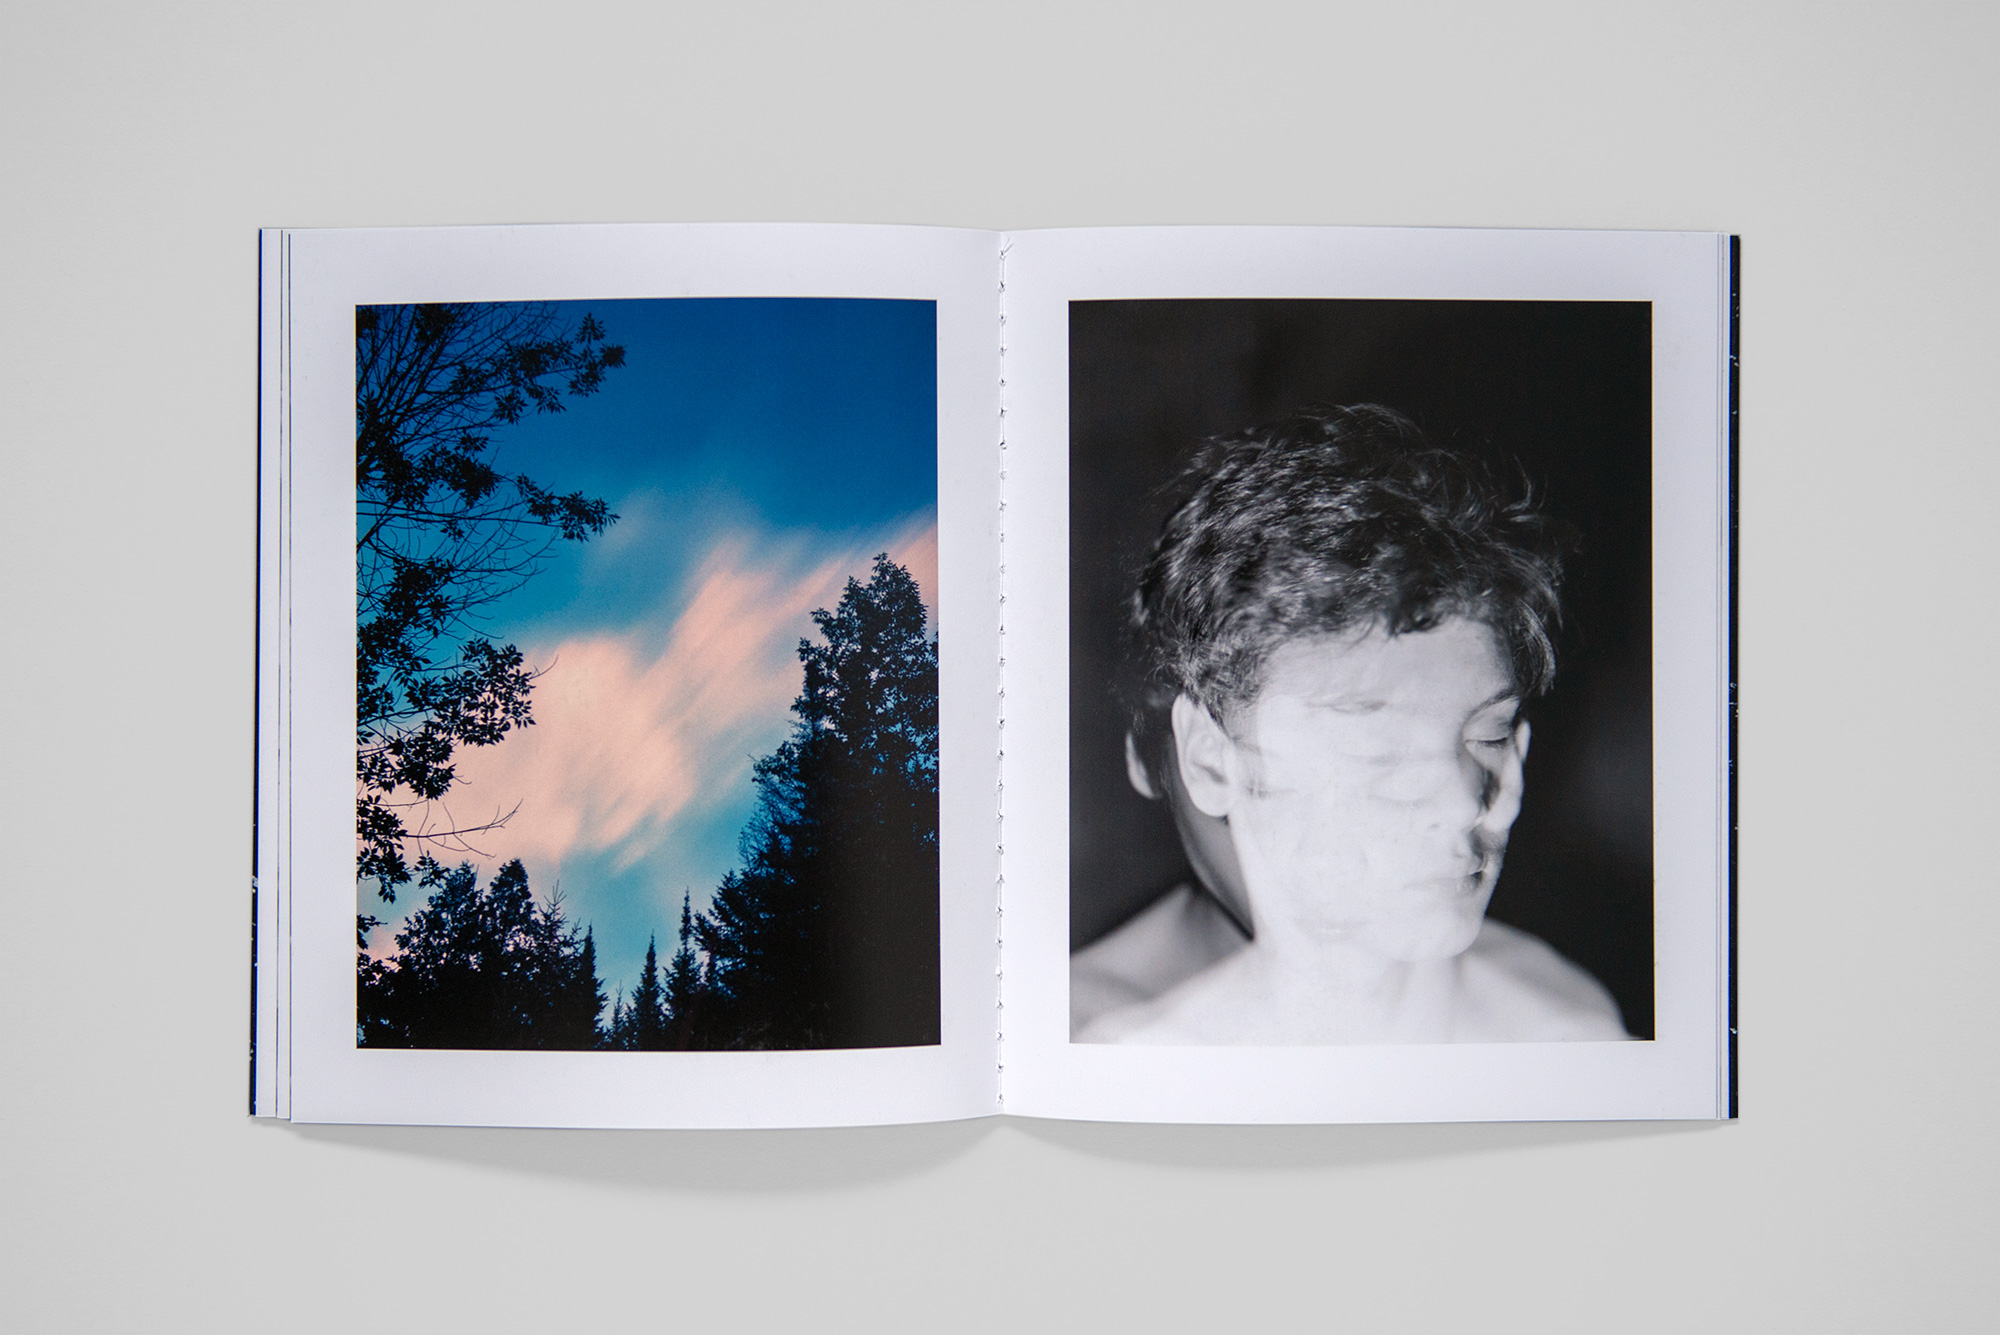 Participants will learn about various approaches and considerations to making a photo book.